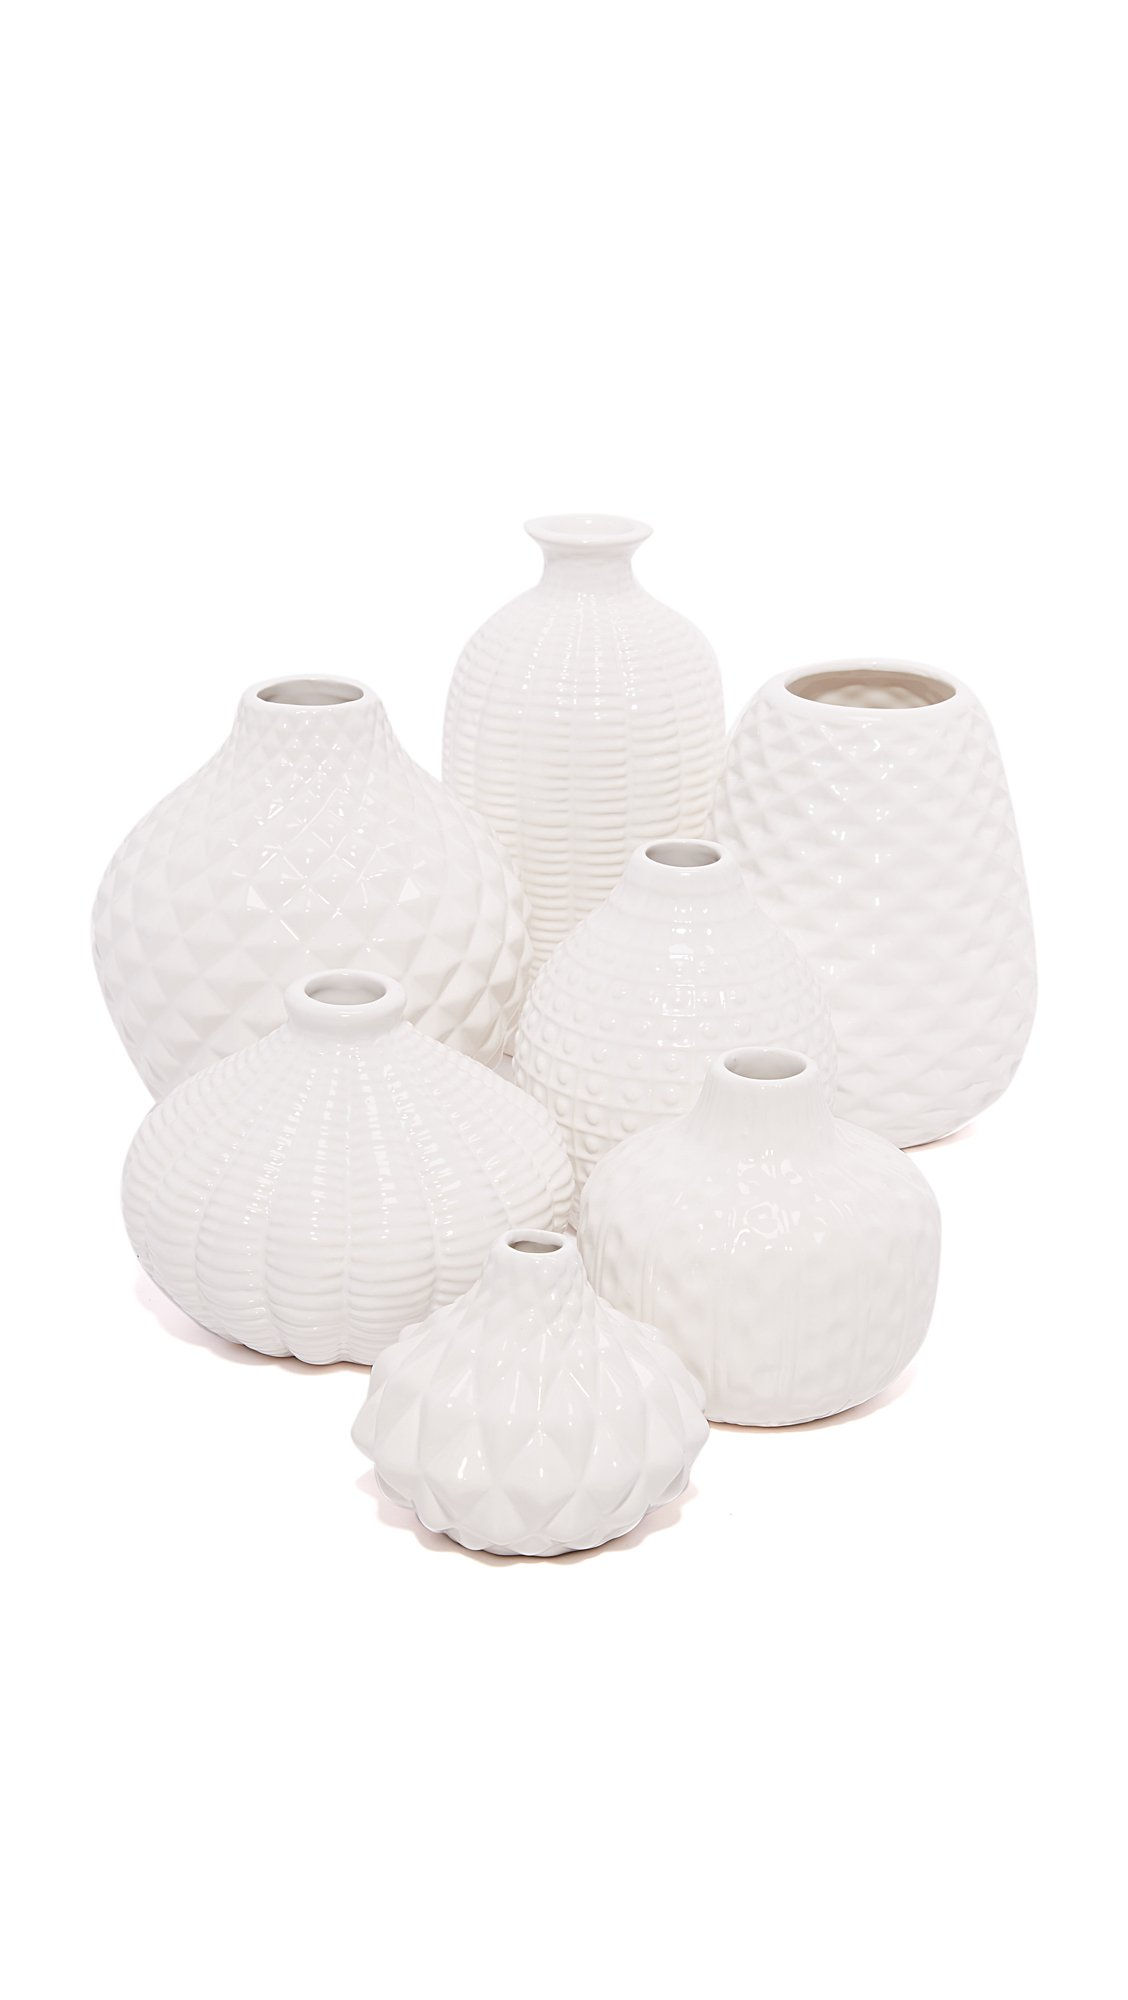 Gift Boutique Women's Artisan Carvings Set of 7 Bud Vases, White, One Size